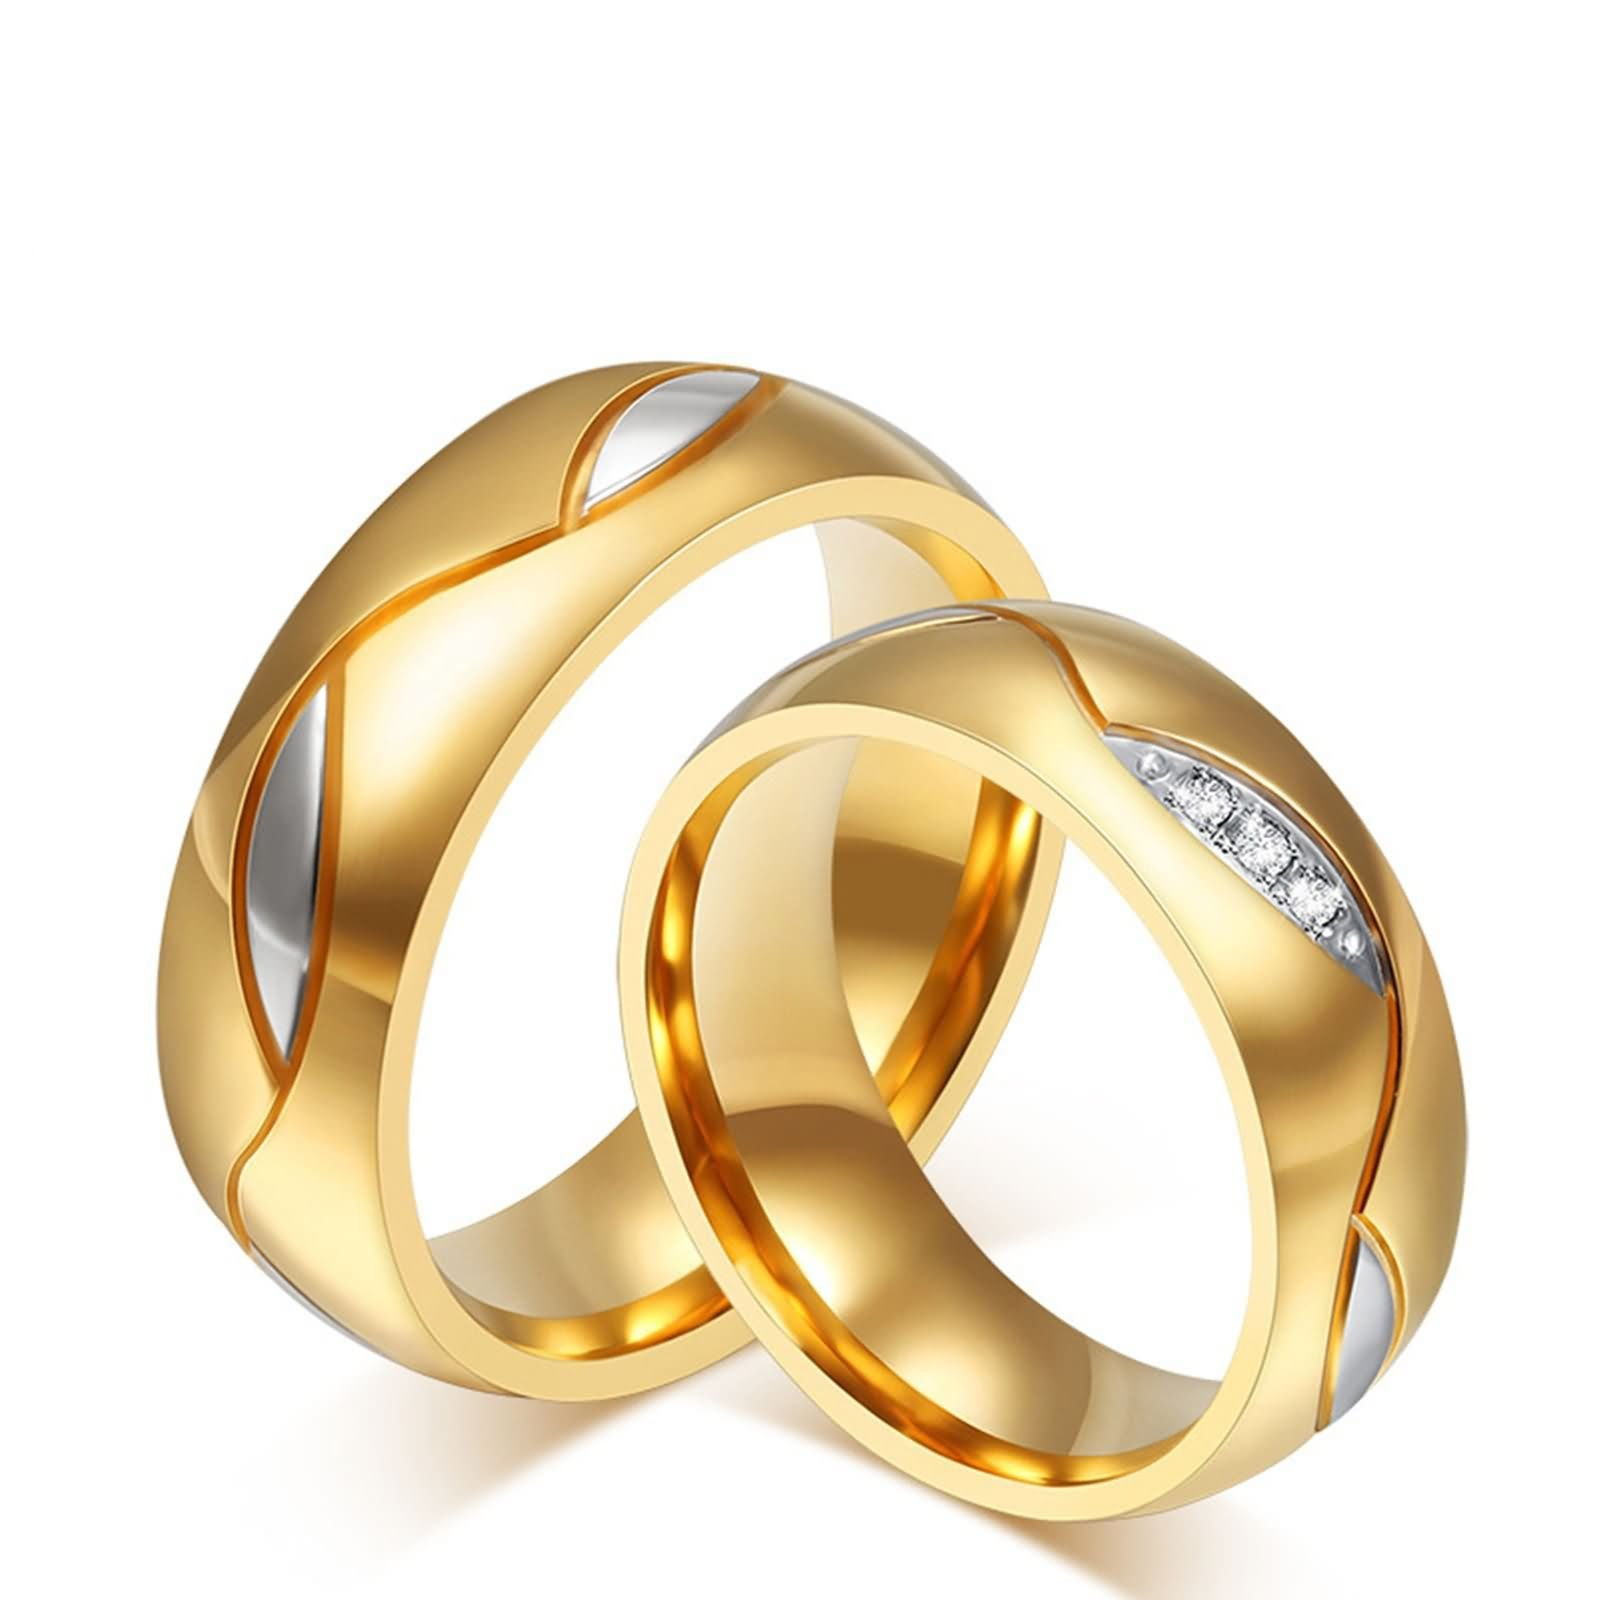 Beydodo Wedding Band Ring Sets Couple Rings Stainless Steel Round CZ Women Size 10 & Men Size 9